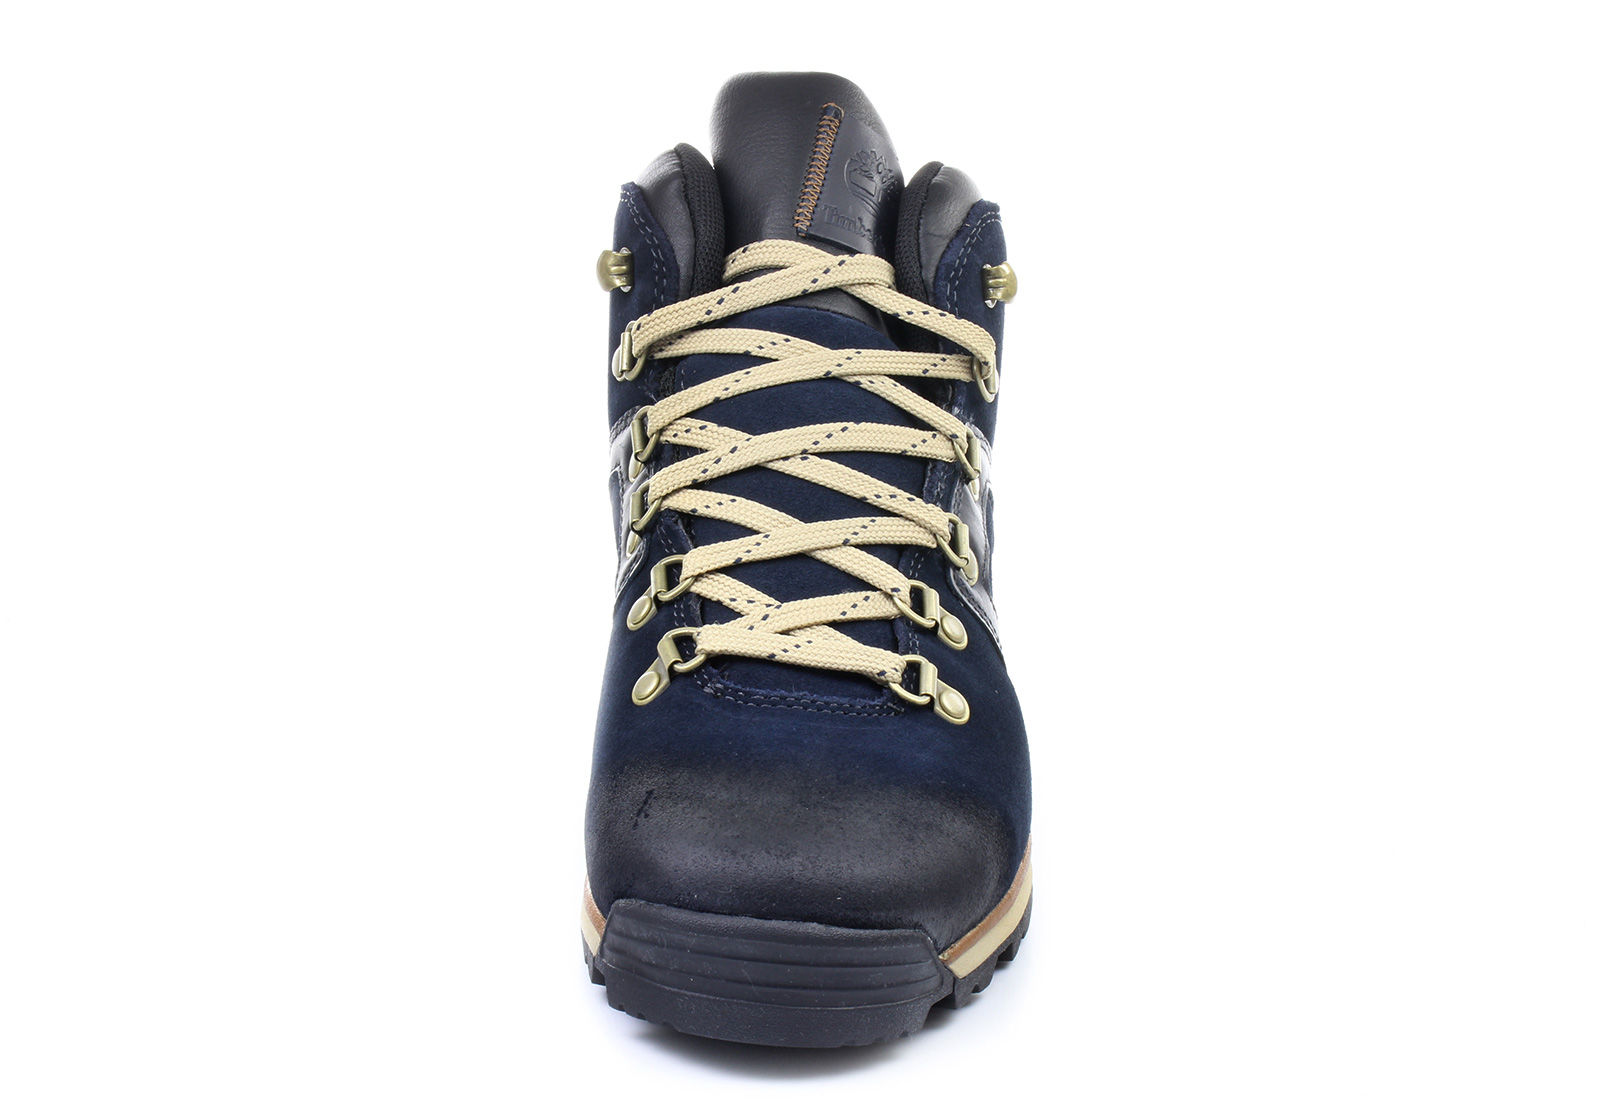 Timberland Boots Scramble Mid GT a113v blu Online shop for sneakers, shoes and boots